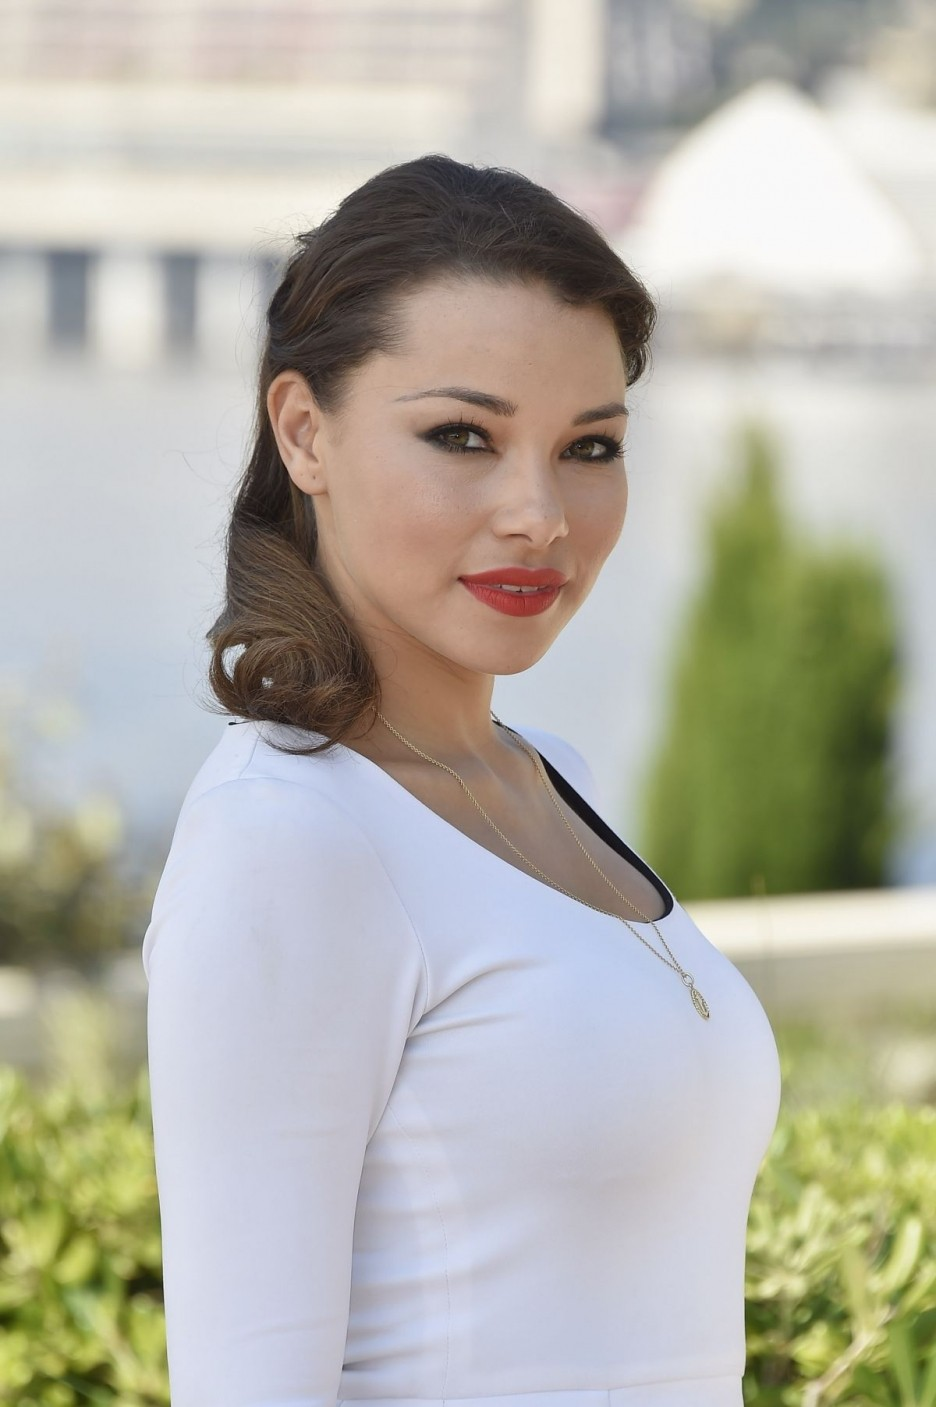 Jessica parker kennedy hannah new others black sails - 2 part 1